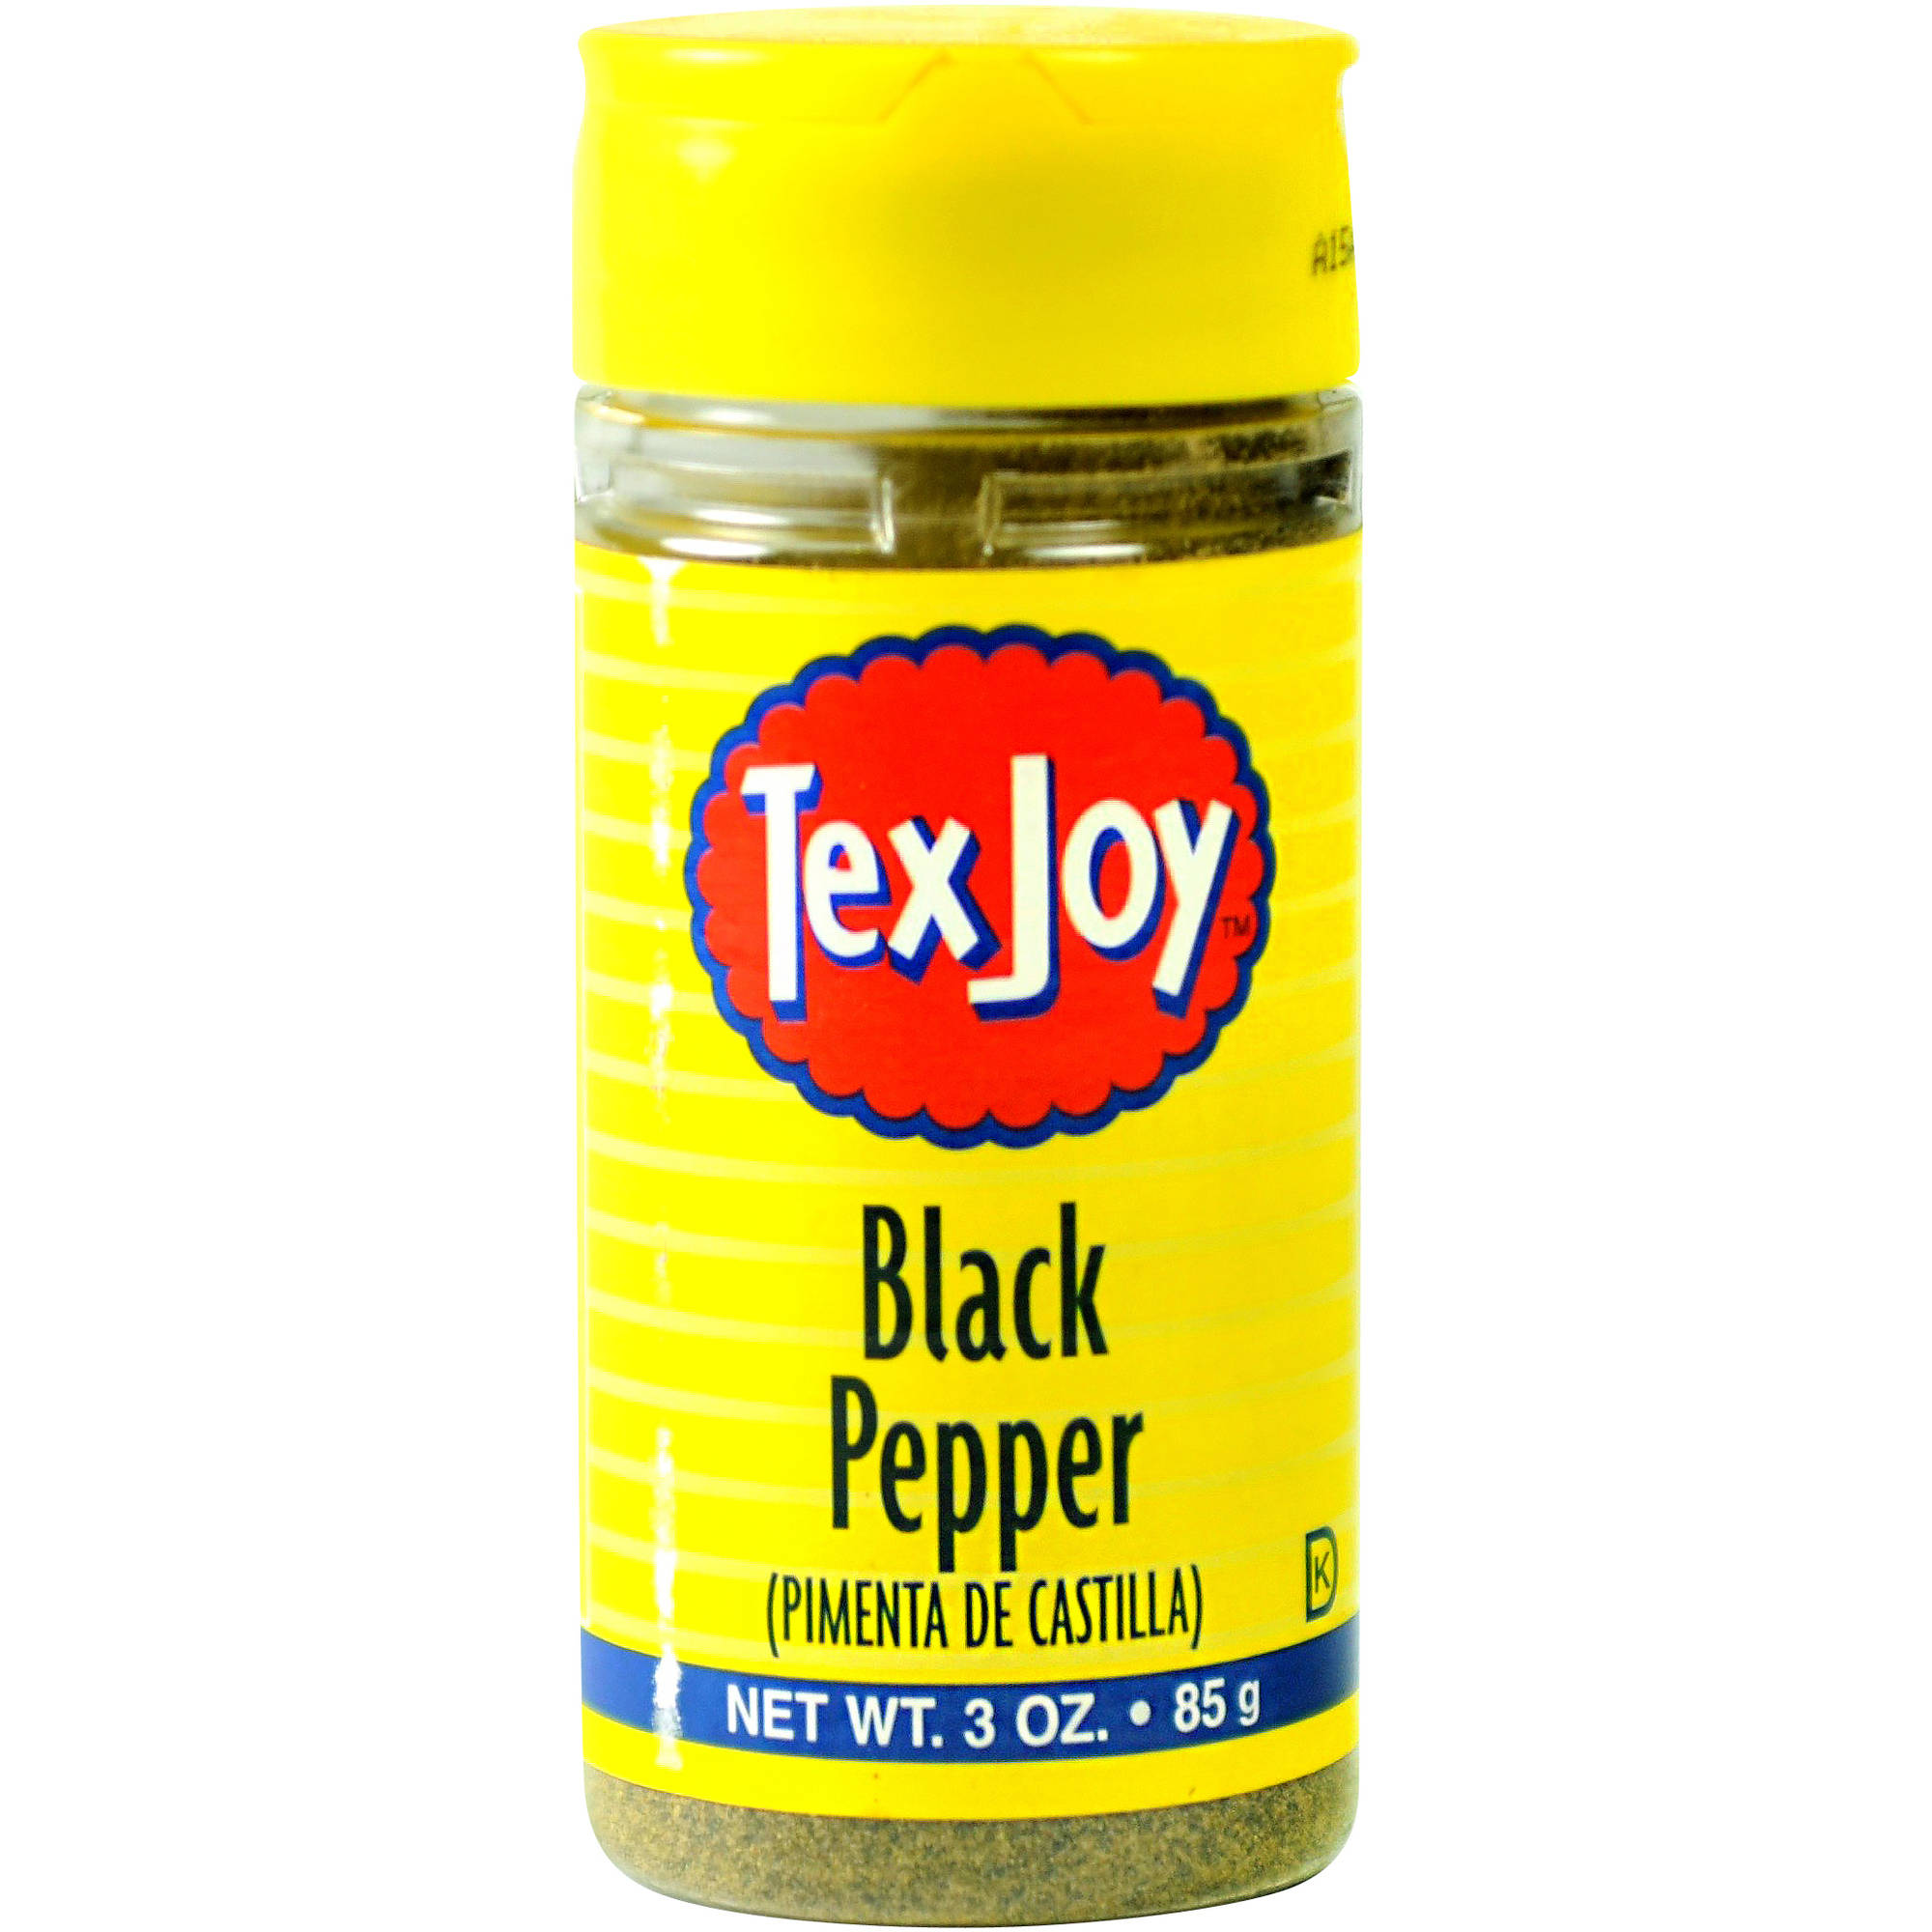 TexJoy Black Pepper, 3 oz